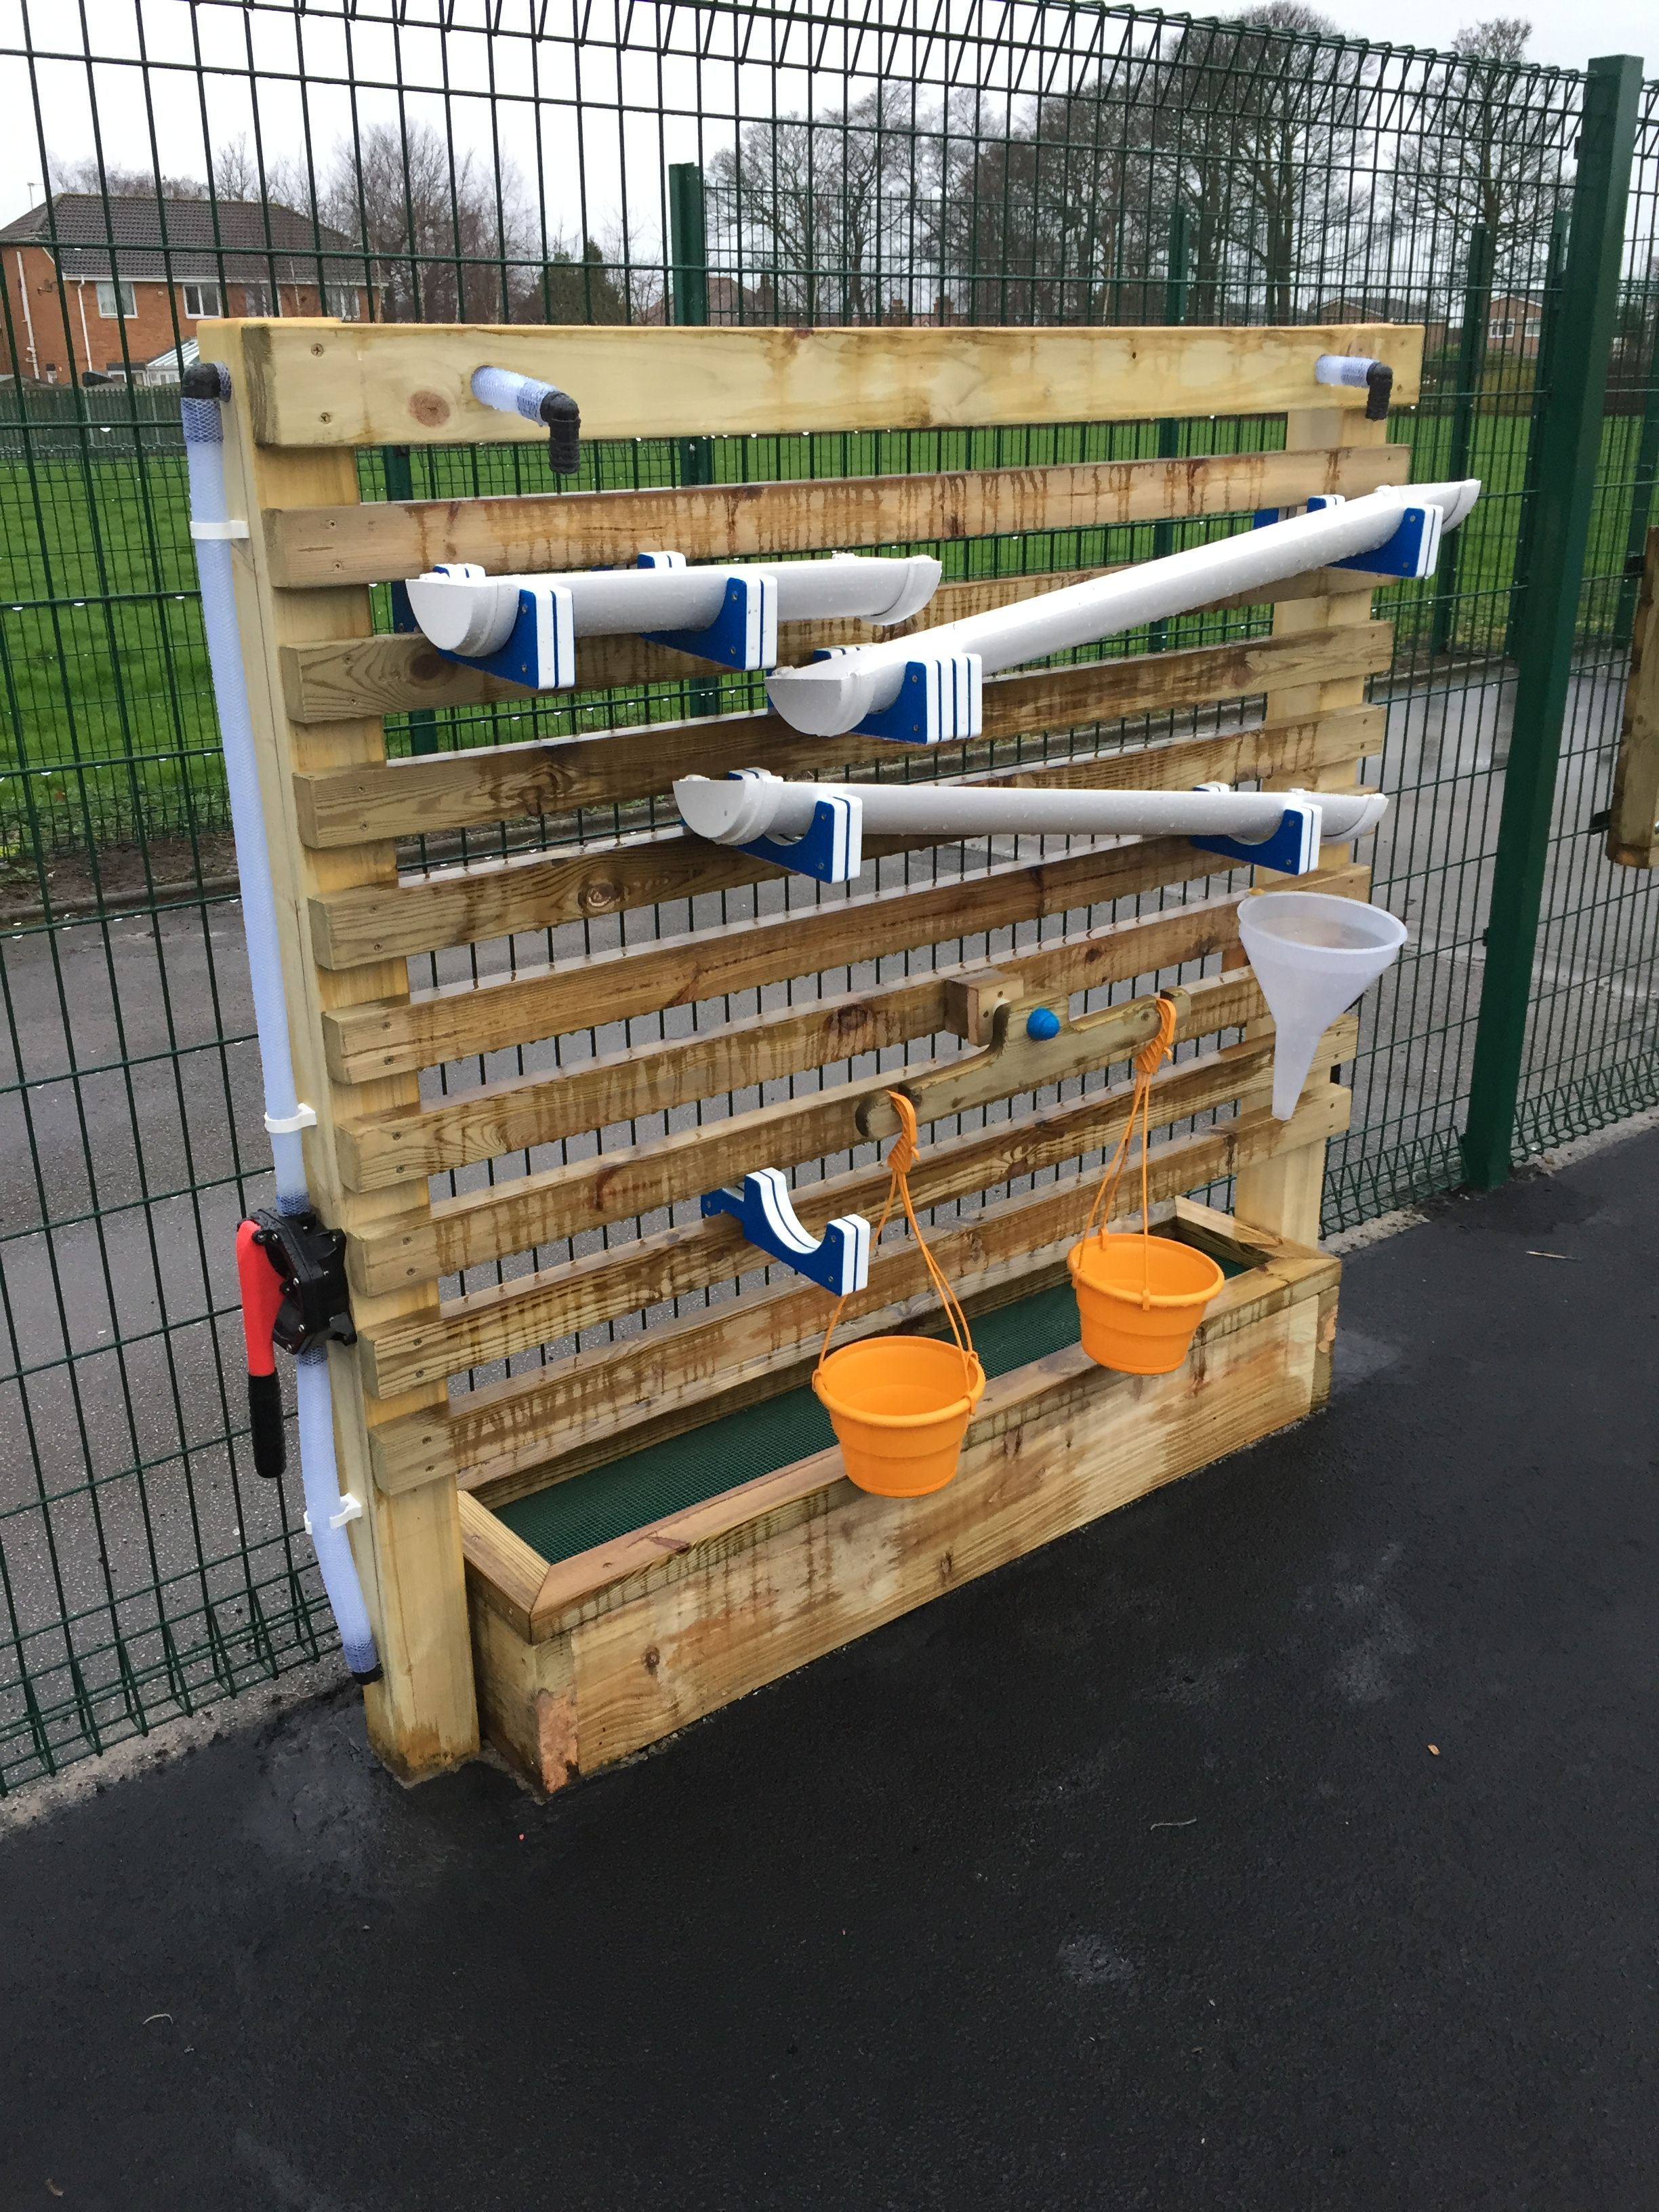 Water Play Water Wall With Adjustable Water Troughs Scales And Funnel Water Play For Kids Eyfs Outdoor Area Water Walls